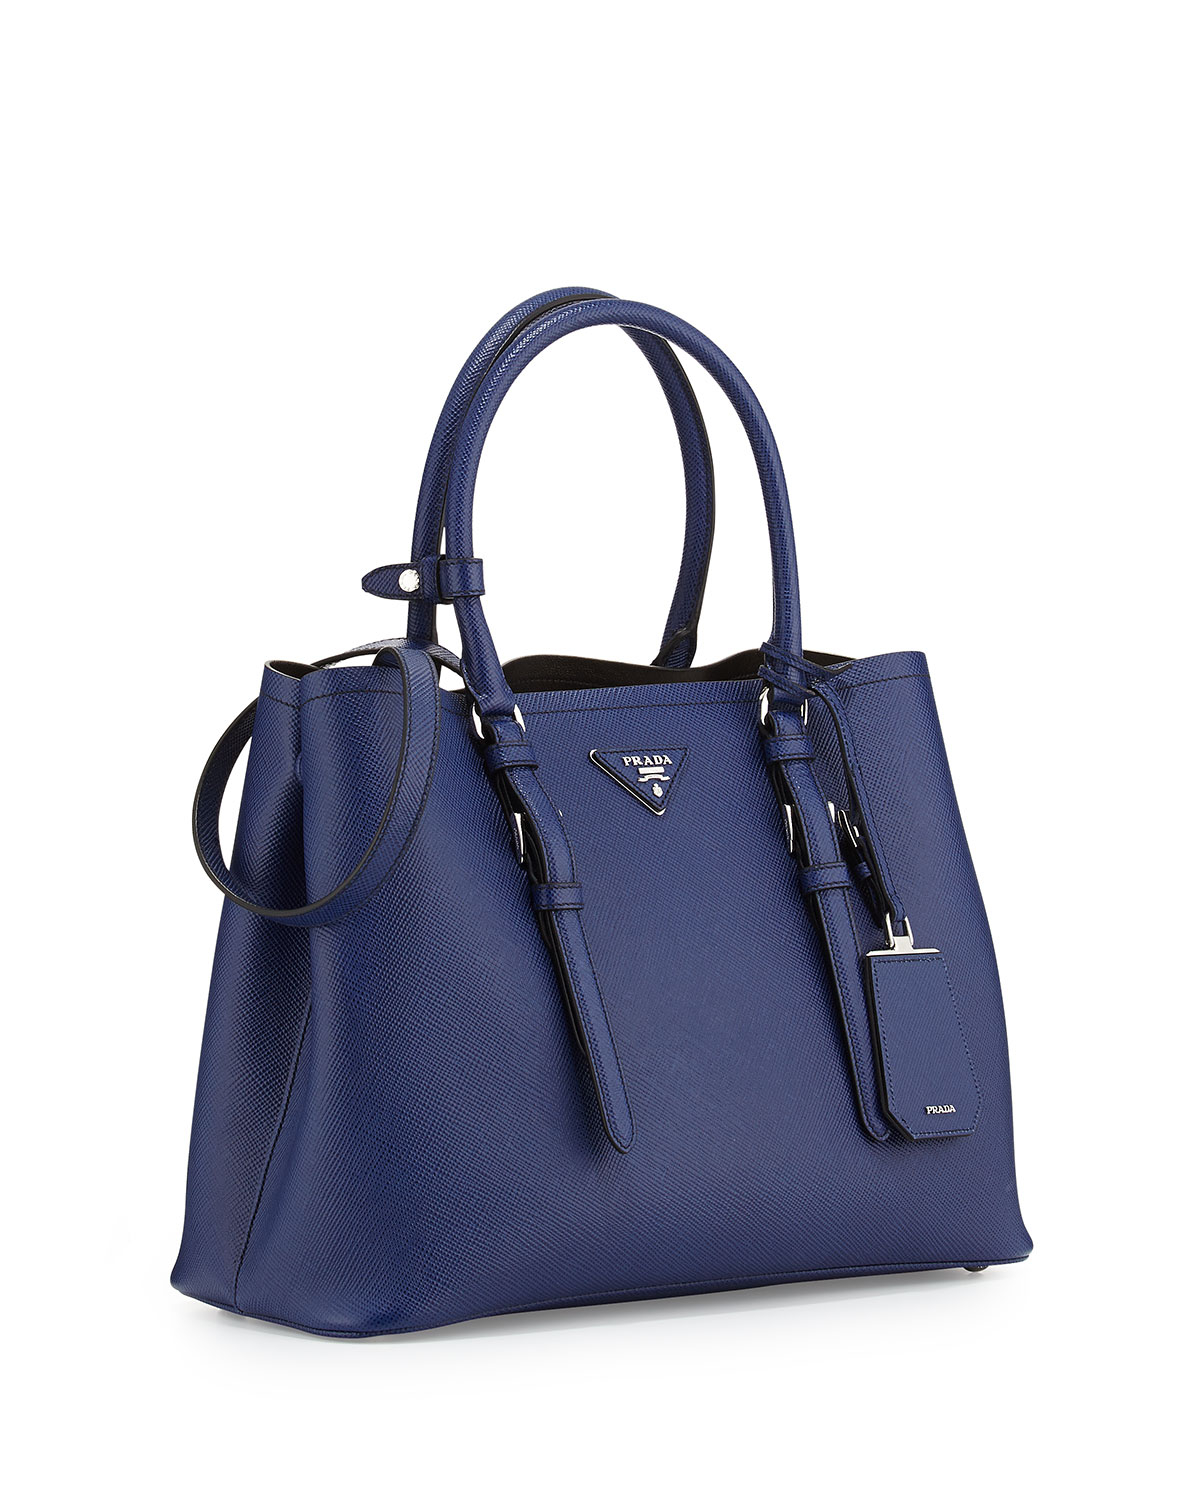 1755a42593 uk prada pale blue double tote small bag 138b5 4b1ea  uk lyst prada saffiano  cuir covered strap double bag in blue a245a 72ab3